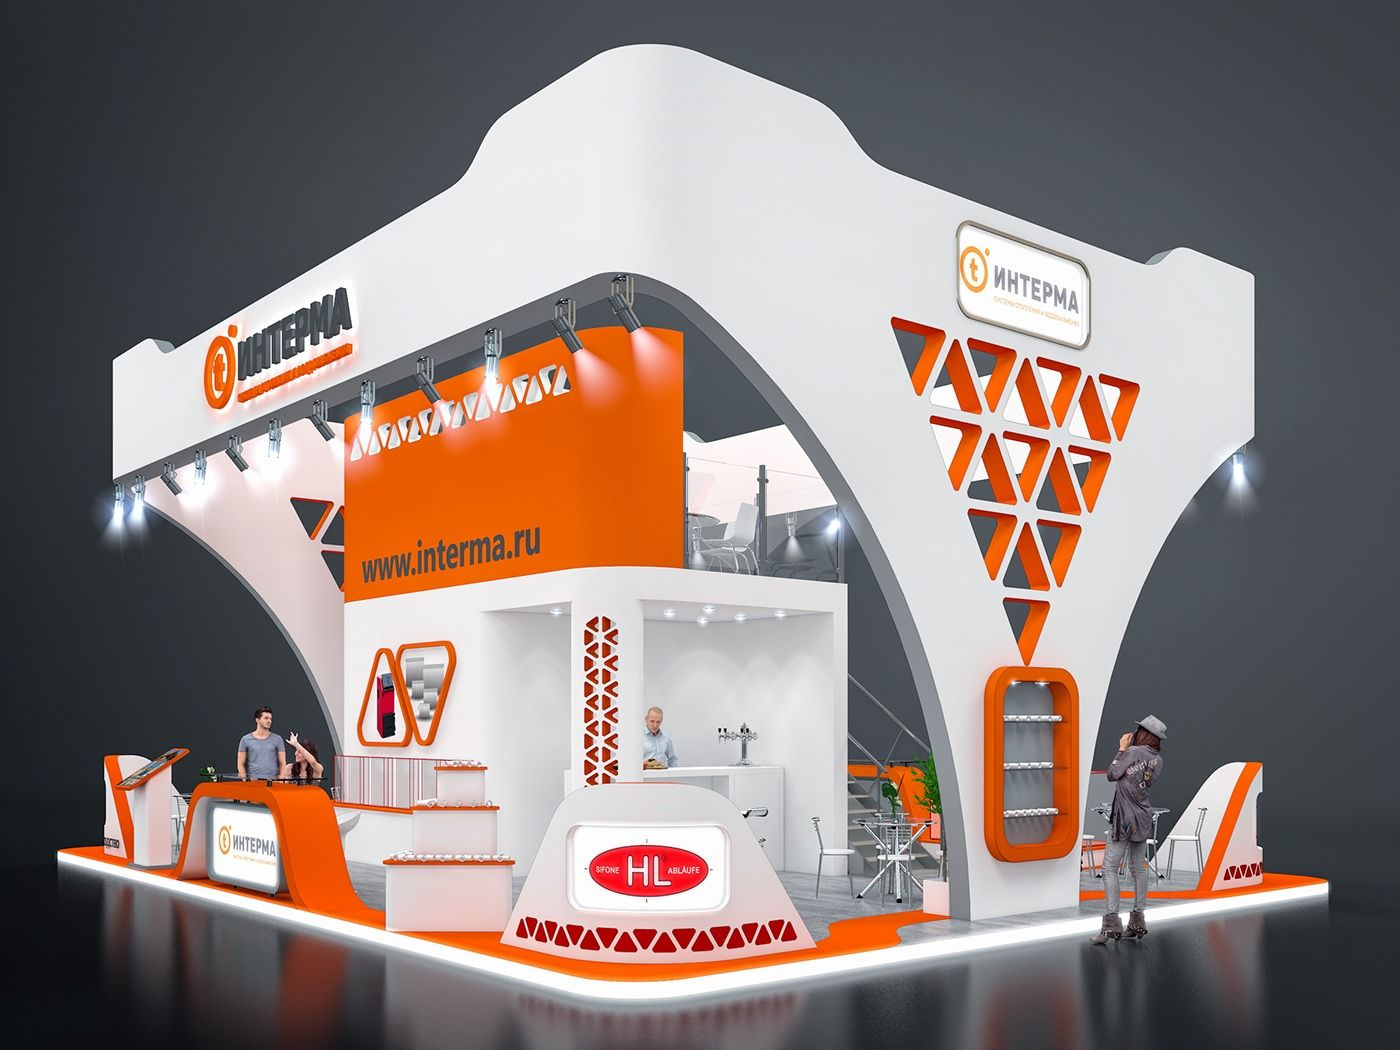 Exhibition Stand Behance : Exhibition stand design on behance booth